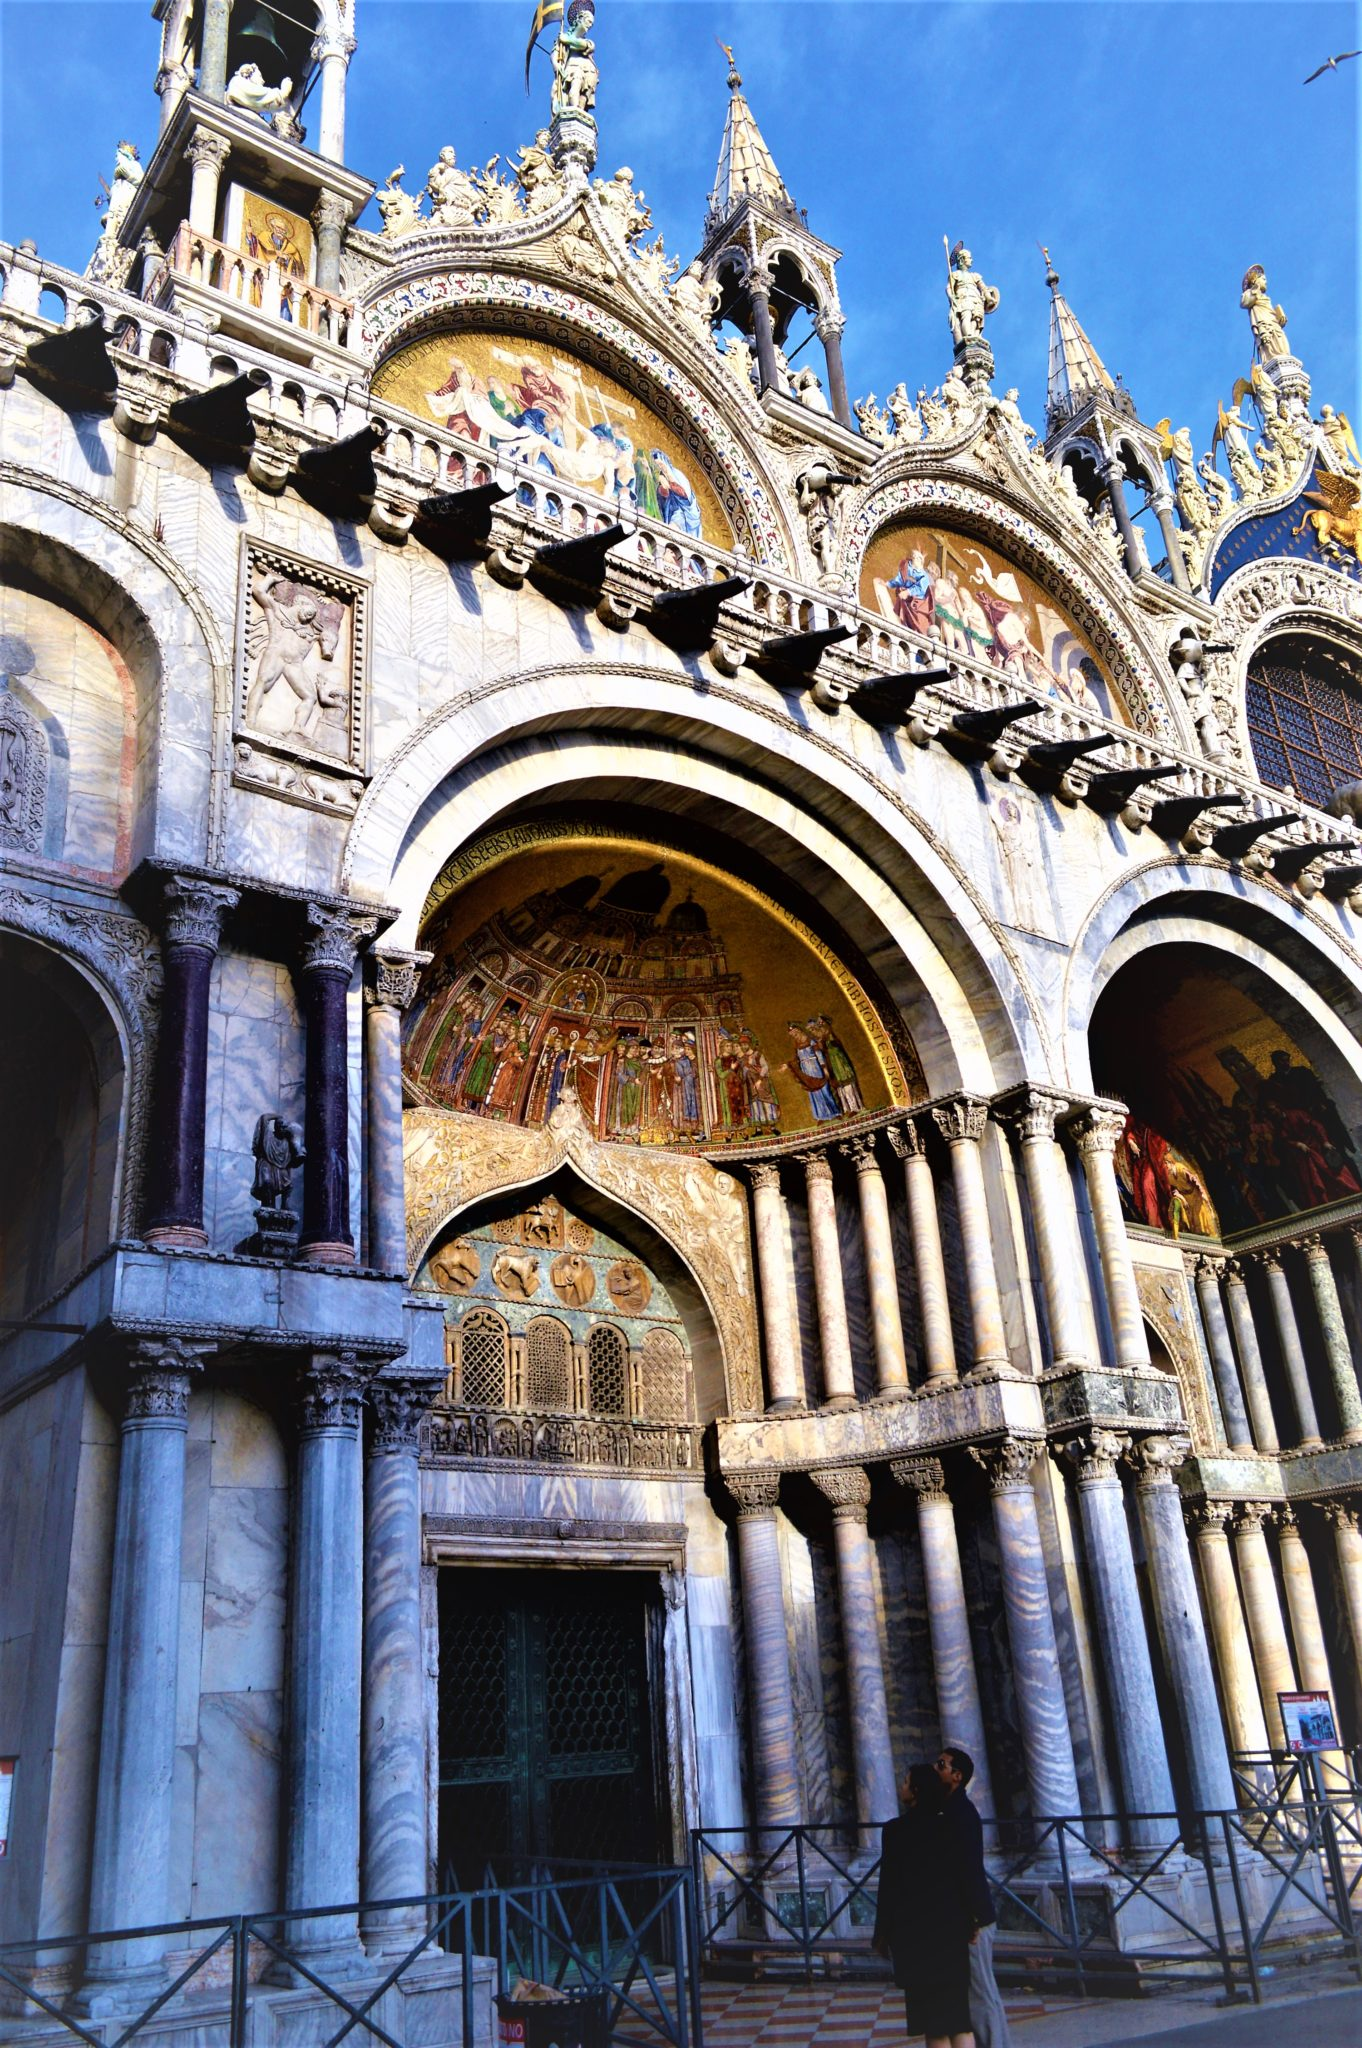 Exterior of the St. Mark's Cathedral, Venice, Italy